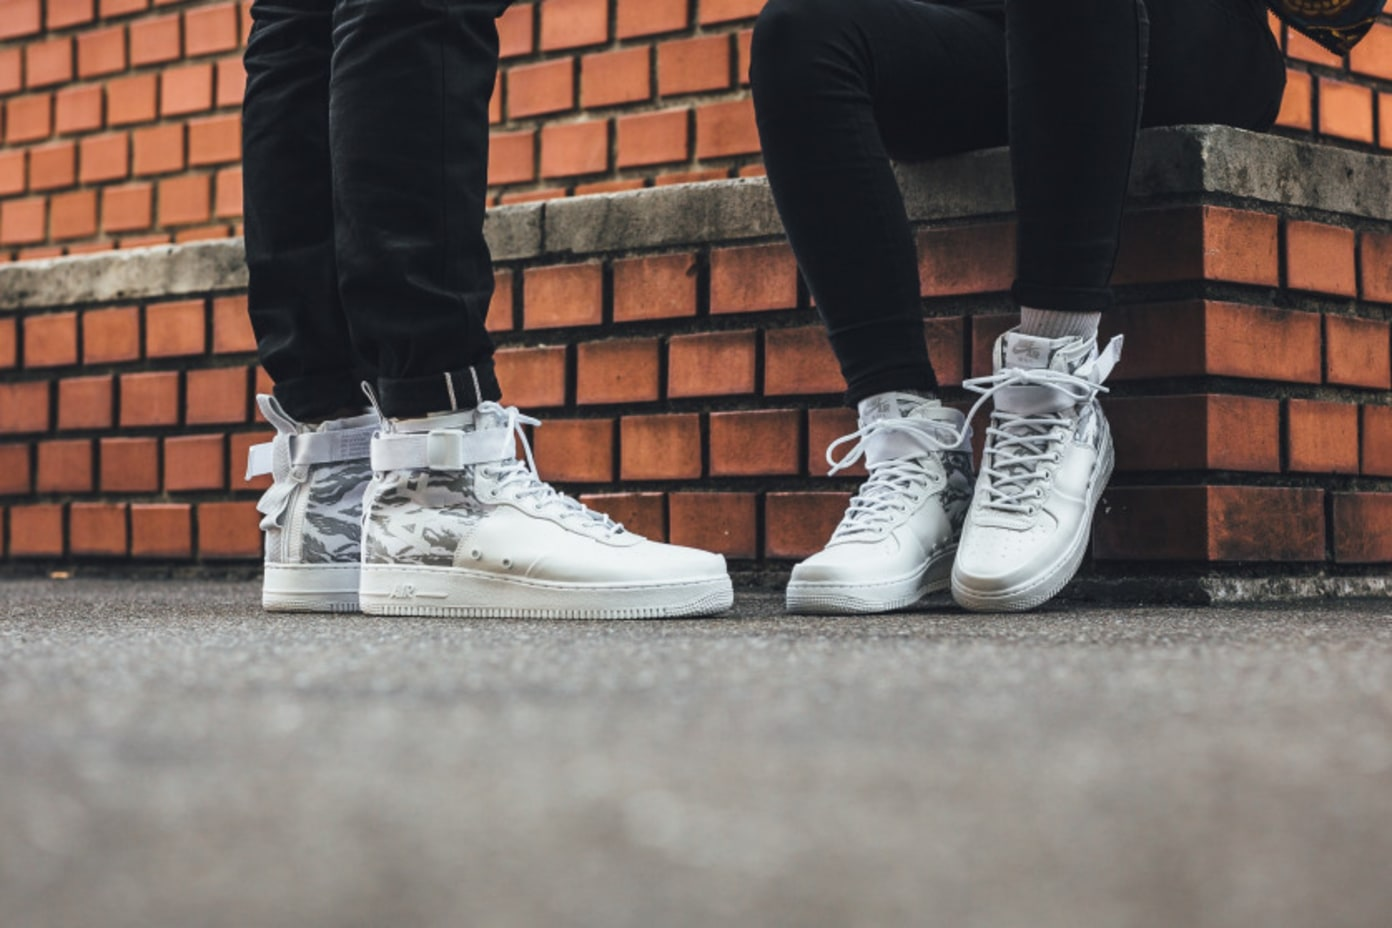 Nike Special Force Air Force 1 Mid â